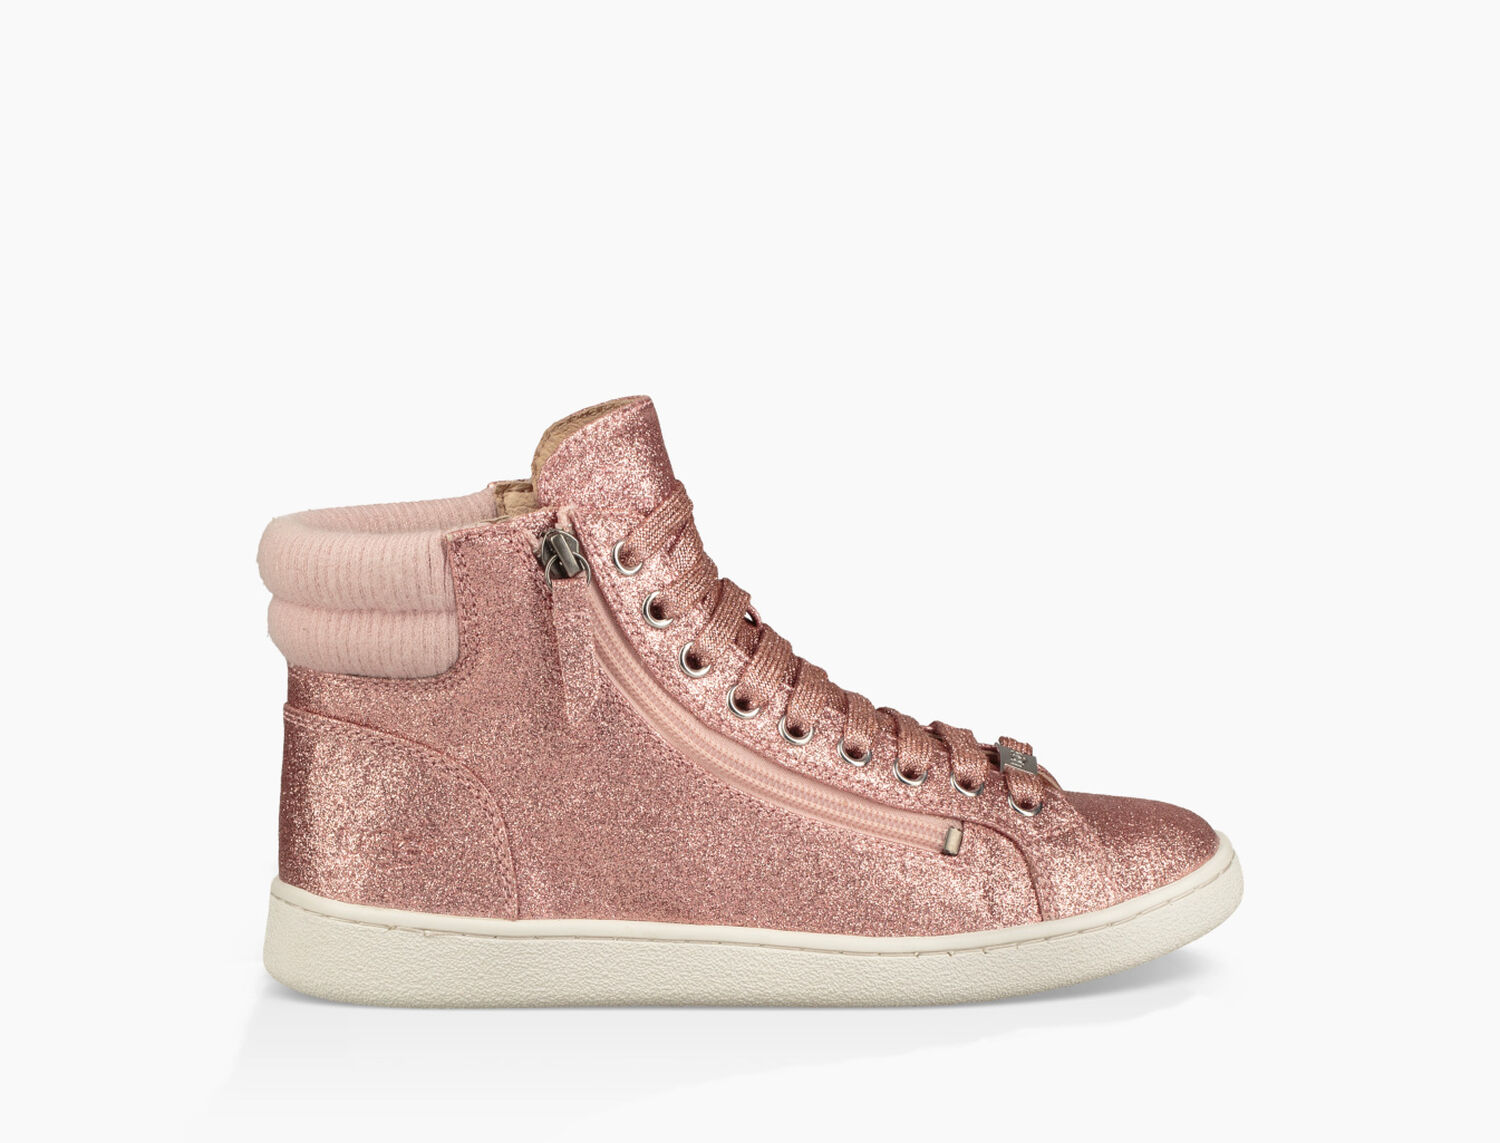 Zoom Olive Glitter Sneaker - Image 1 of 6 a31814e3aa